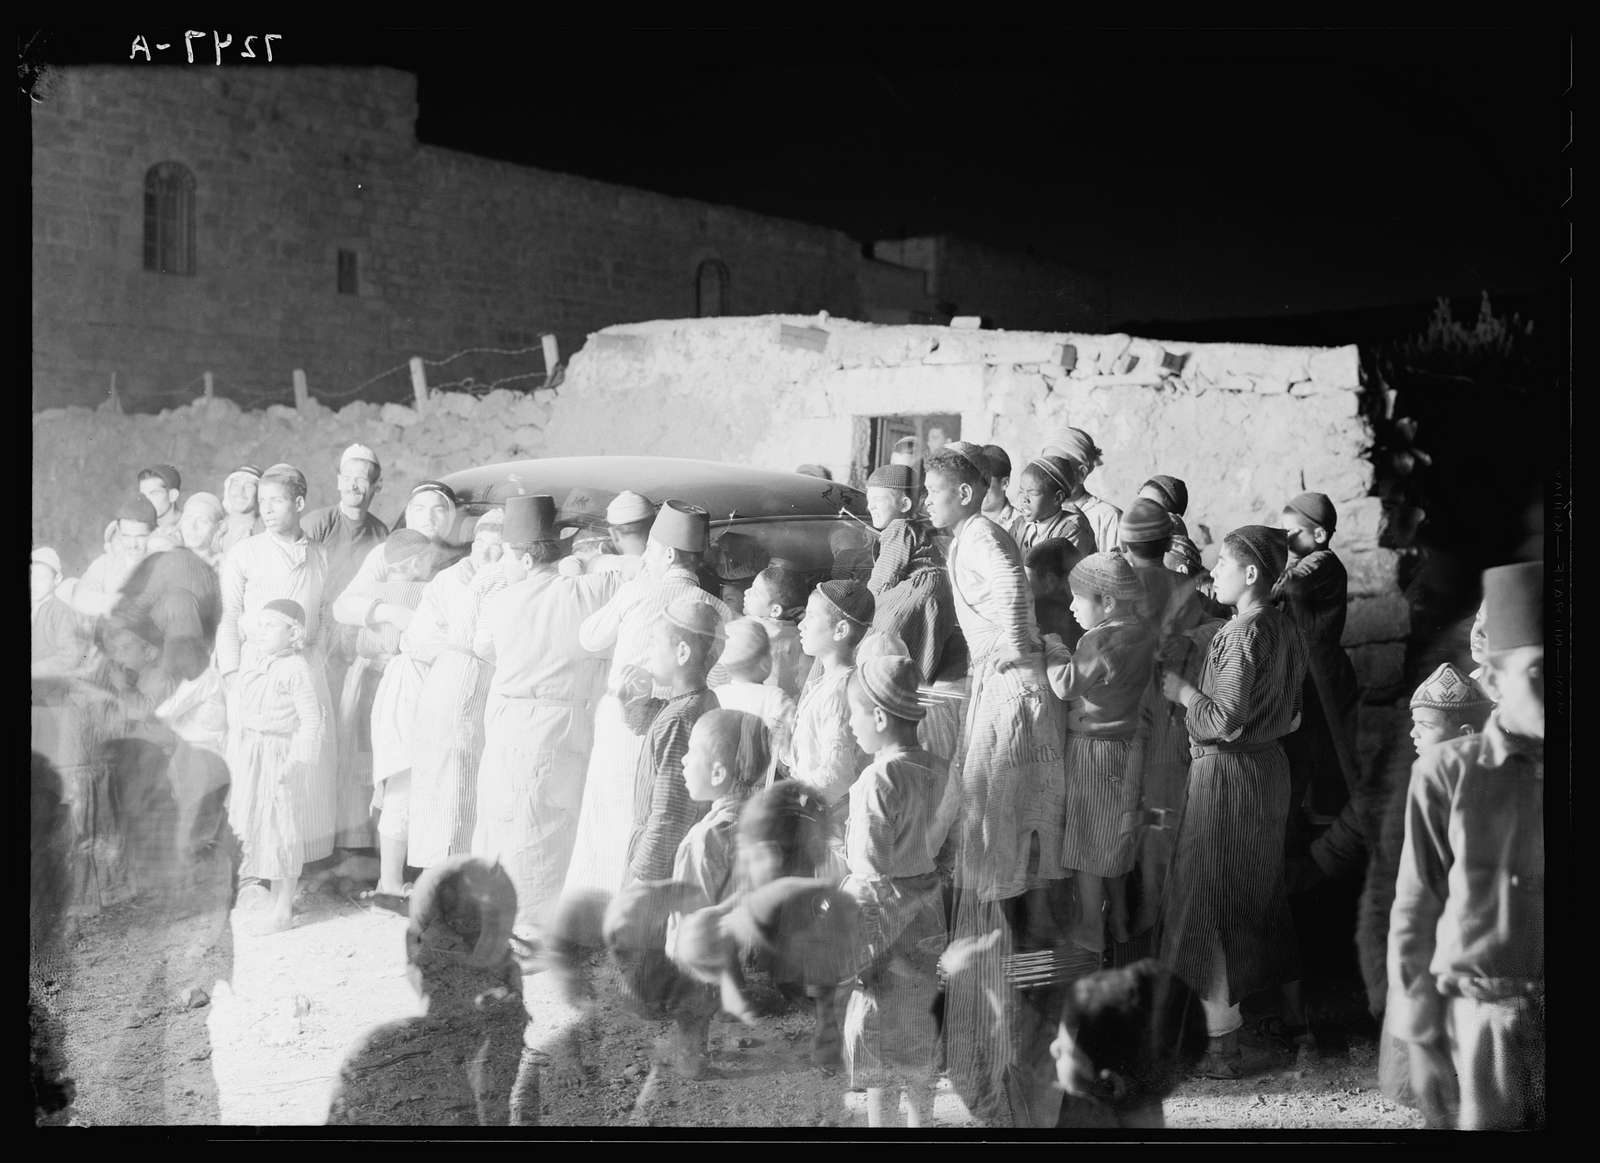 Villagers of el Khadder, listening in to radio of a passing car at night, Oct. 1937